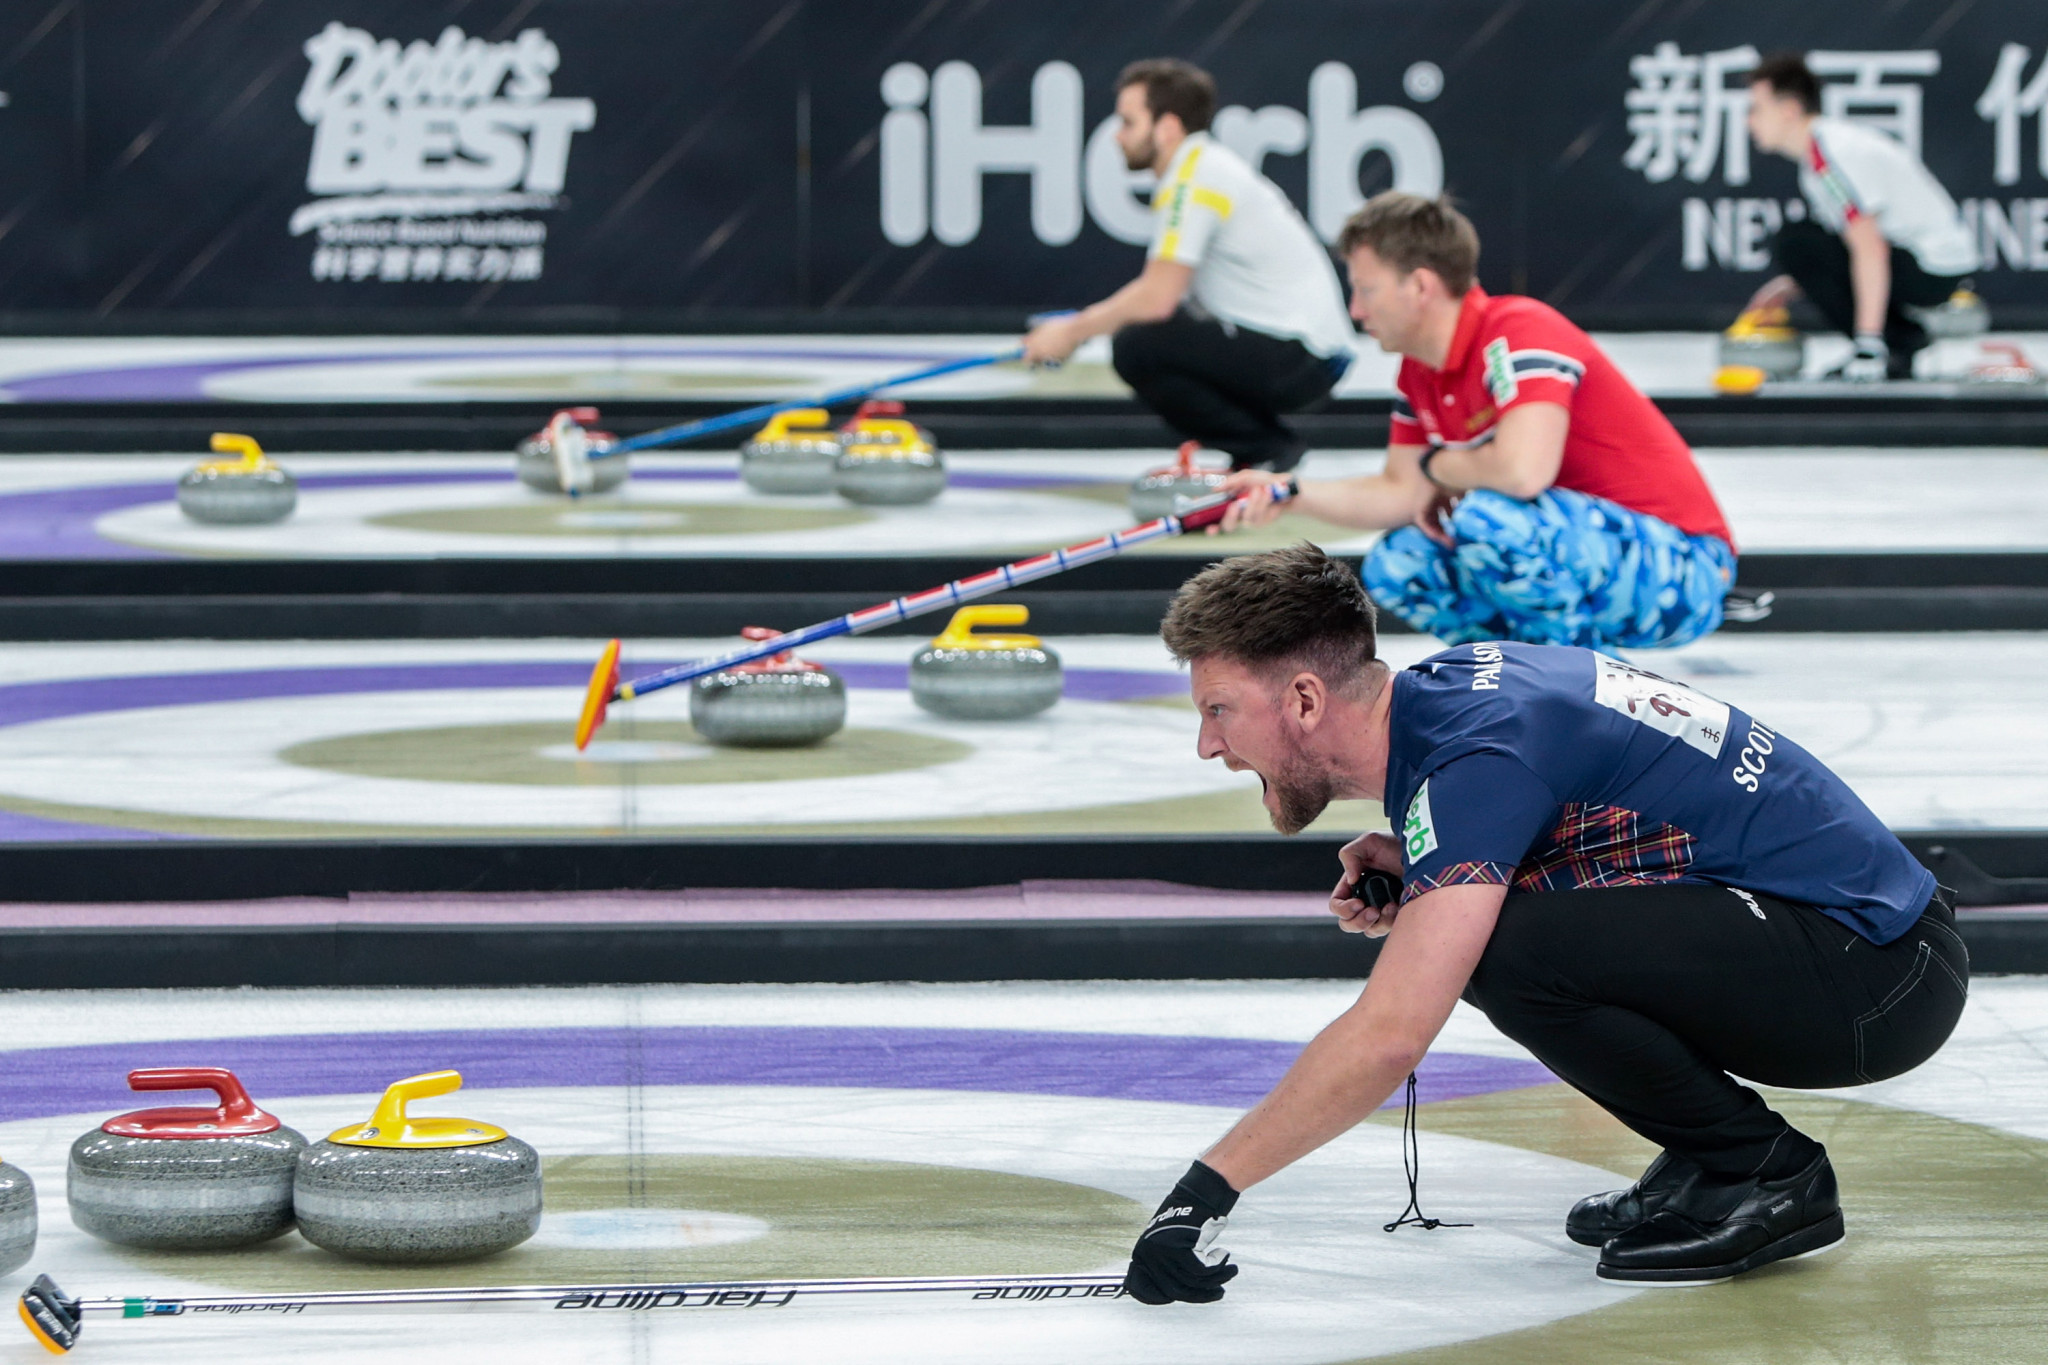 Scotland claim opening wins as European Curling Championship defence begins